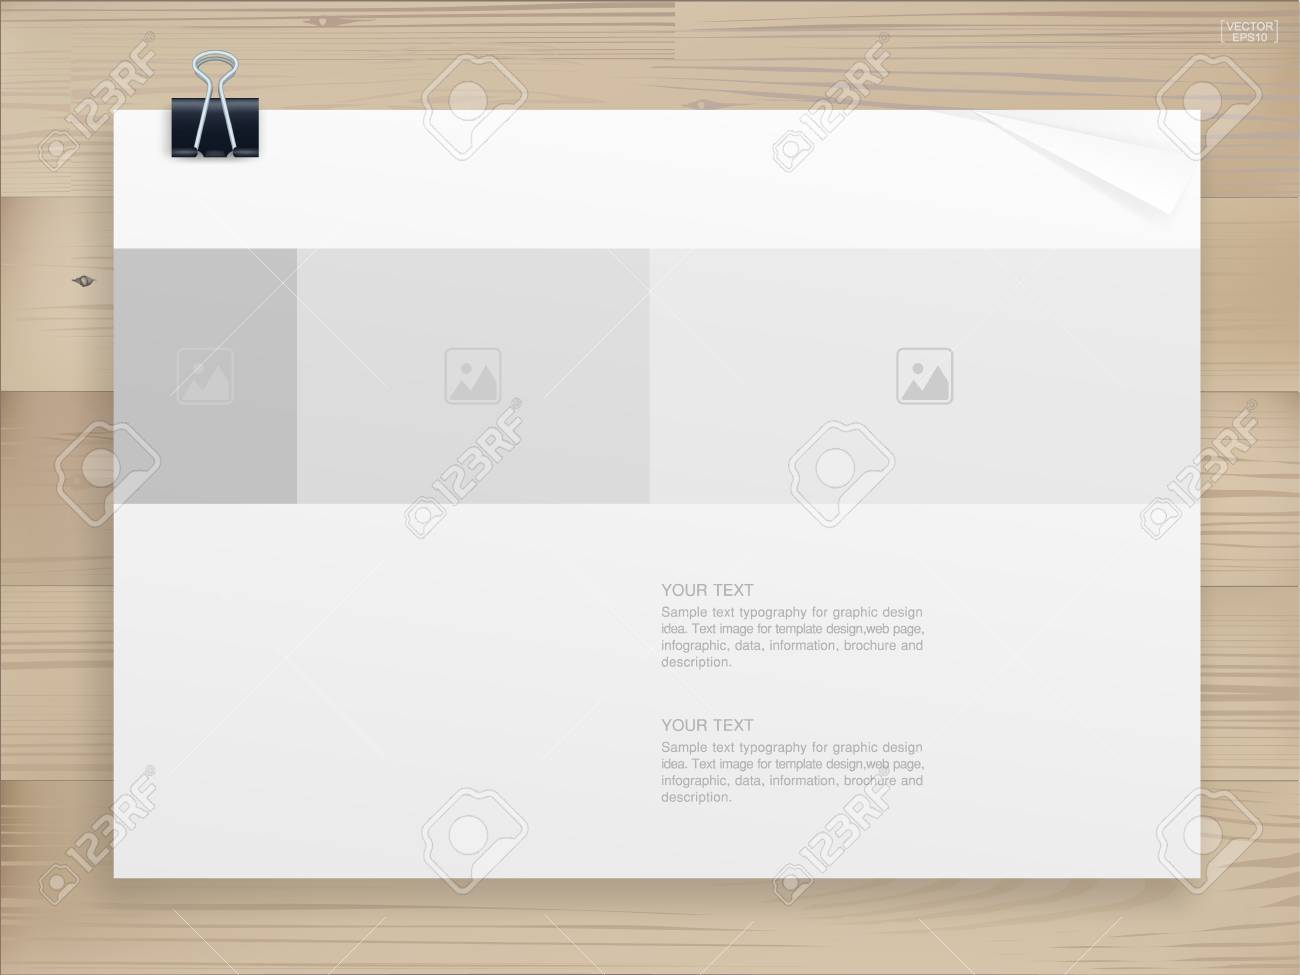 Book Binder With Empty Cover For Background On Wood Template 1300x975